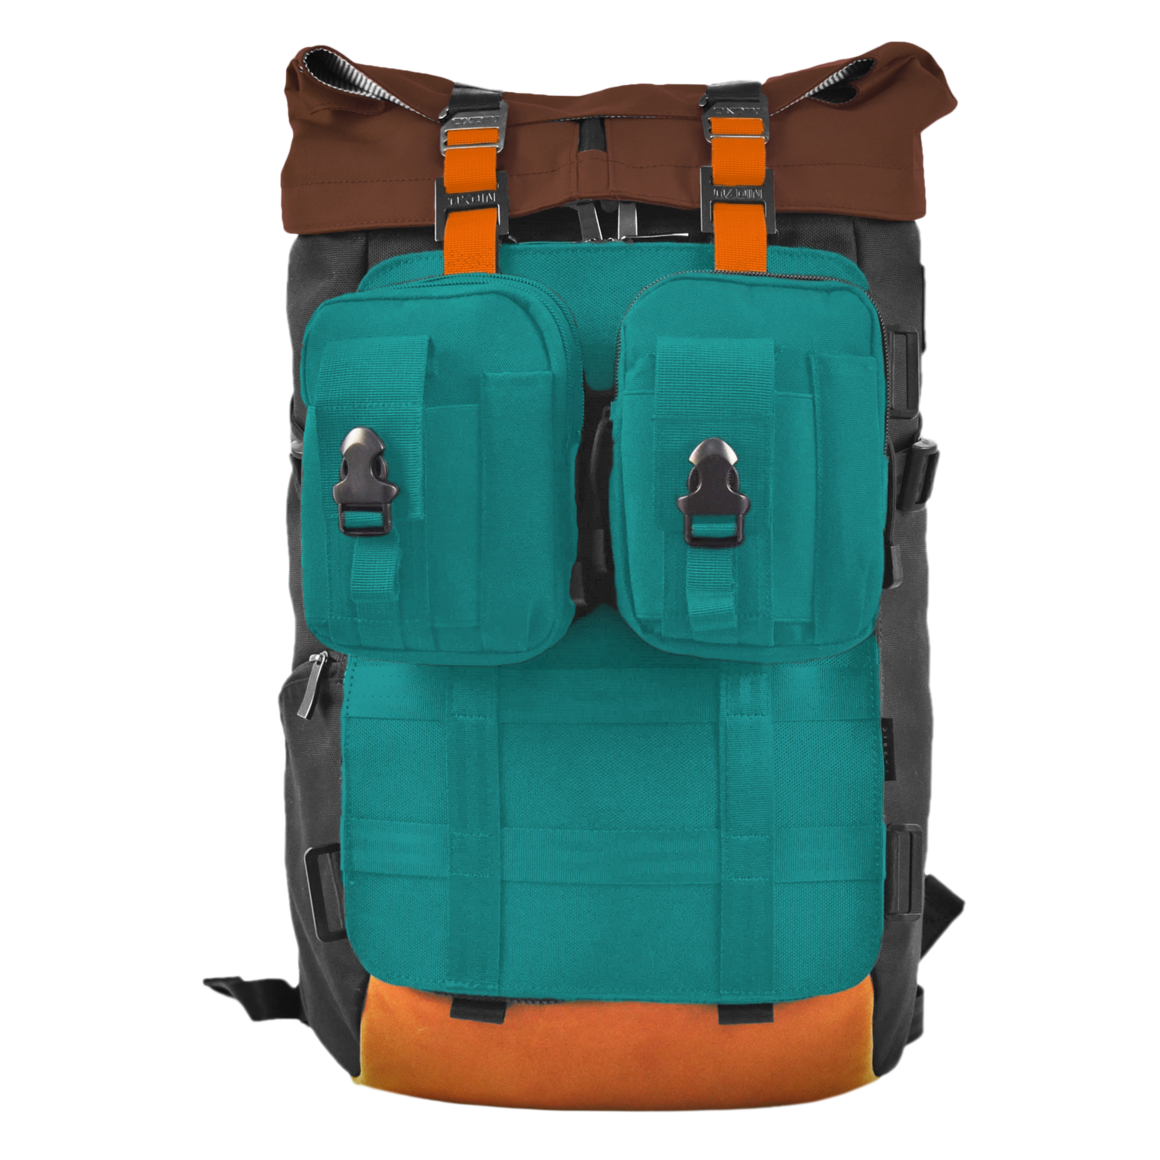 OXDIN_VENIX_BACKPACK_MOLLE_PLUS_COMBINATION_SAMPLE_04_580x@2x.png